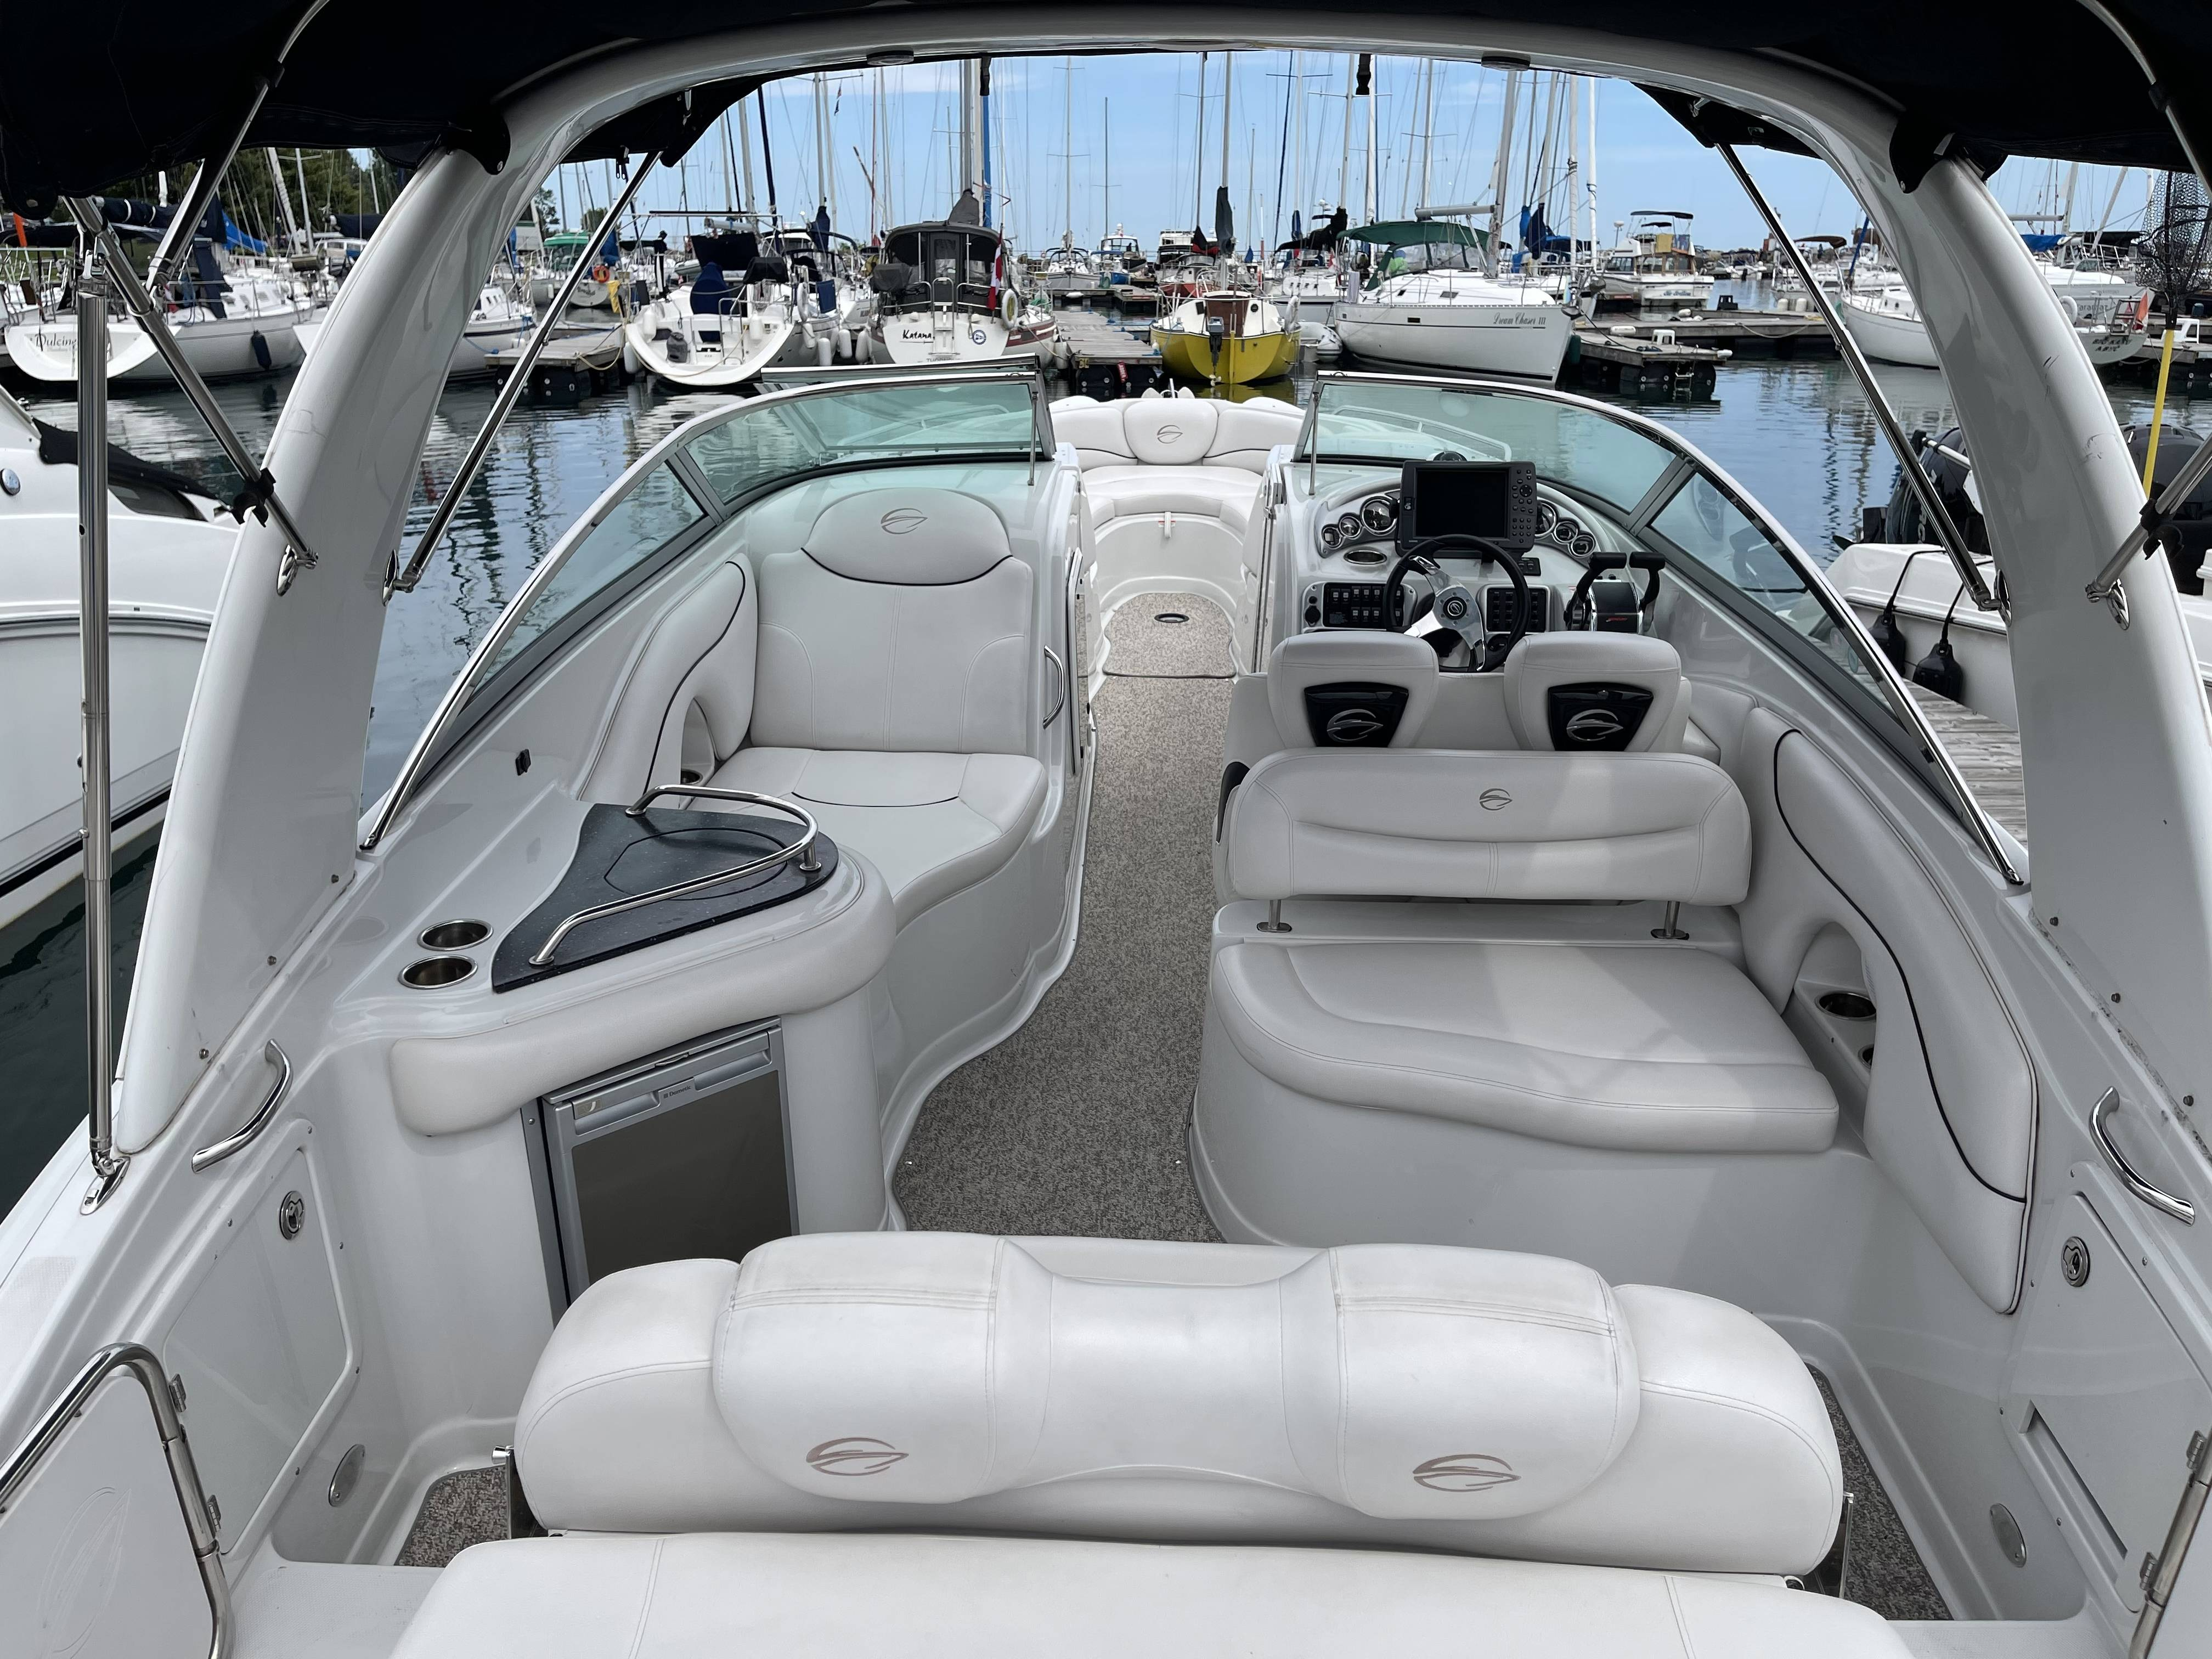 2011 Crownline boat for sale, model of the boat is 320 LS & Image # 23 of 55